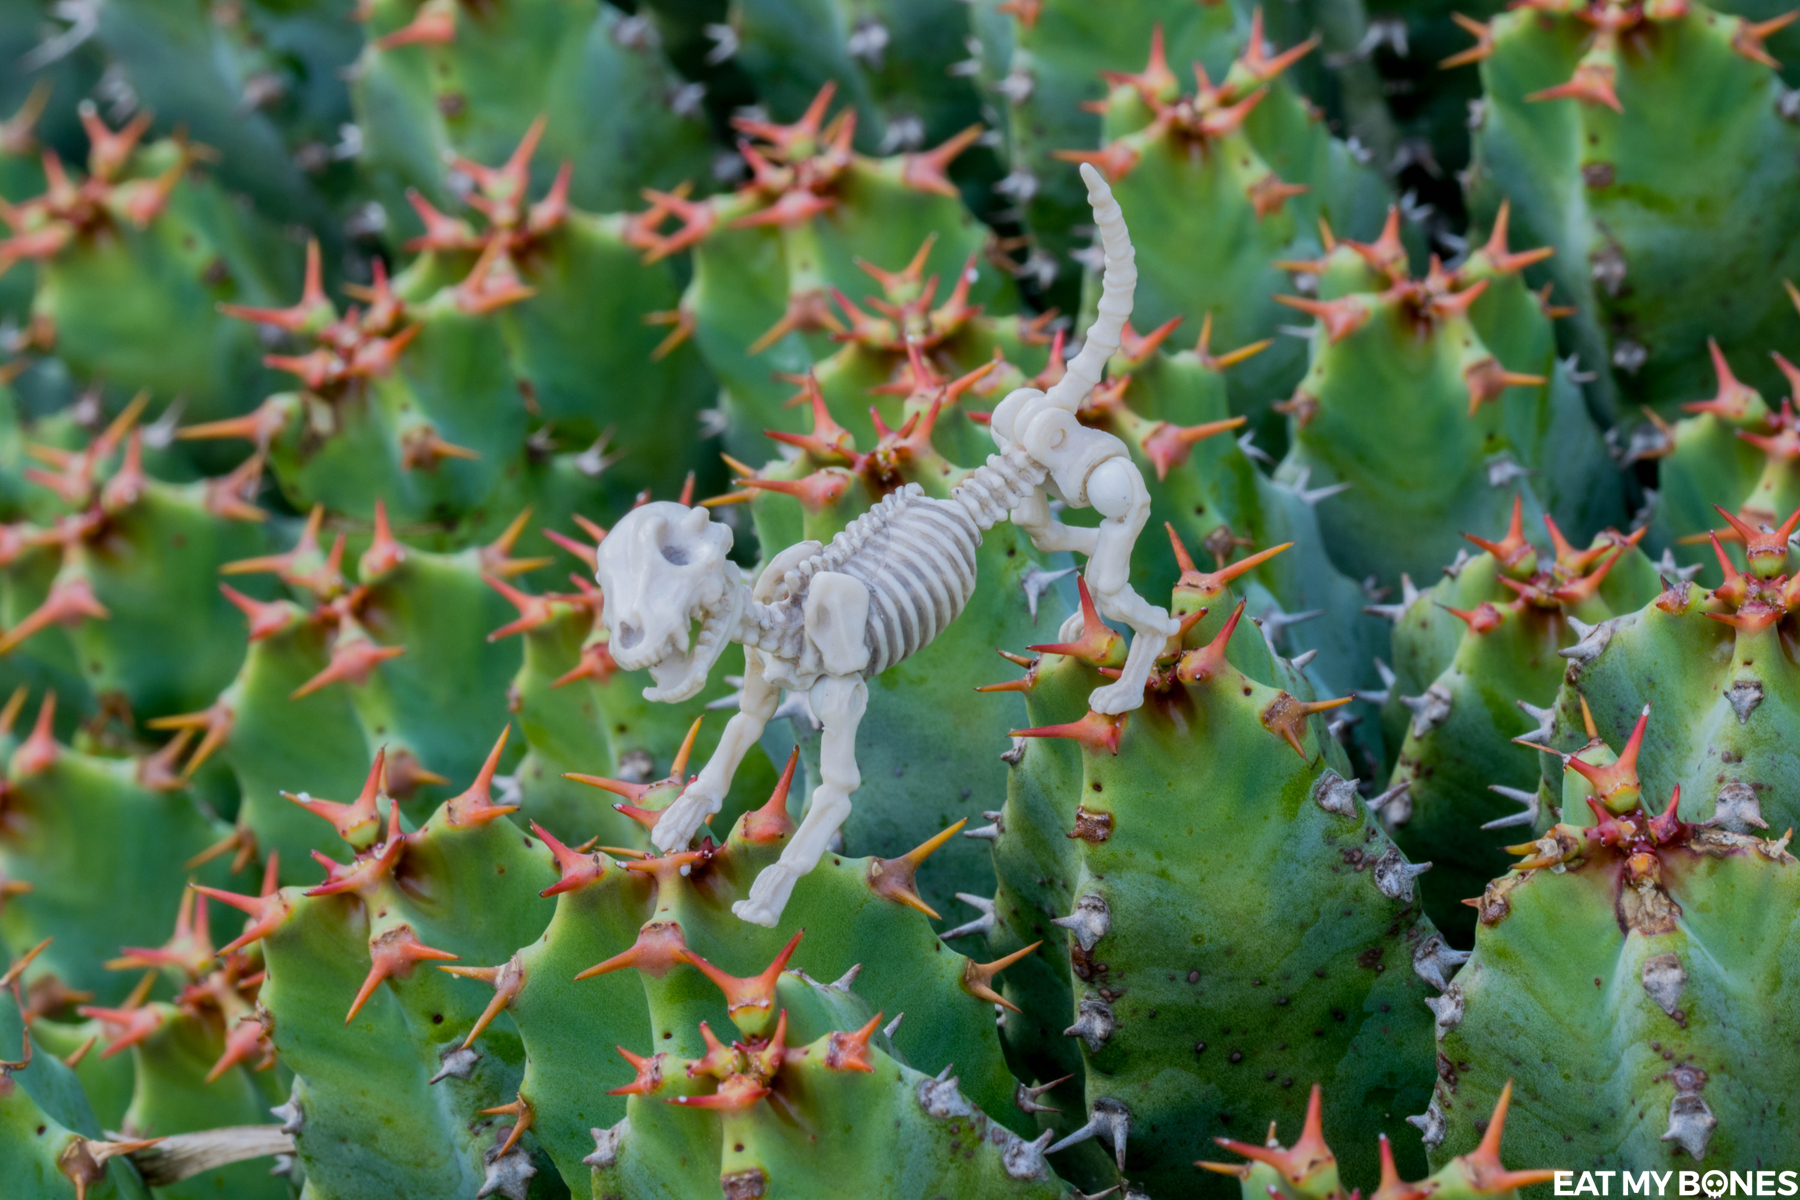 Cactus! - Pose Skeleton - Toy photography - Miniature - Eat my Bones